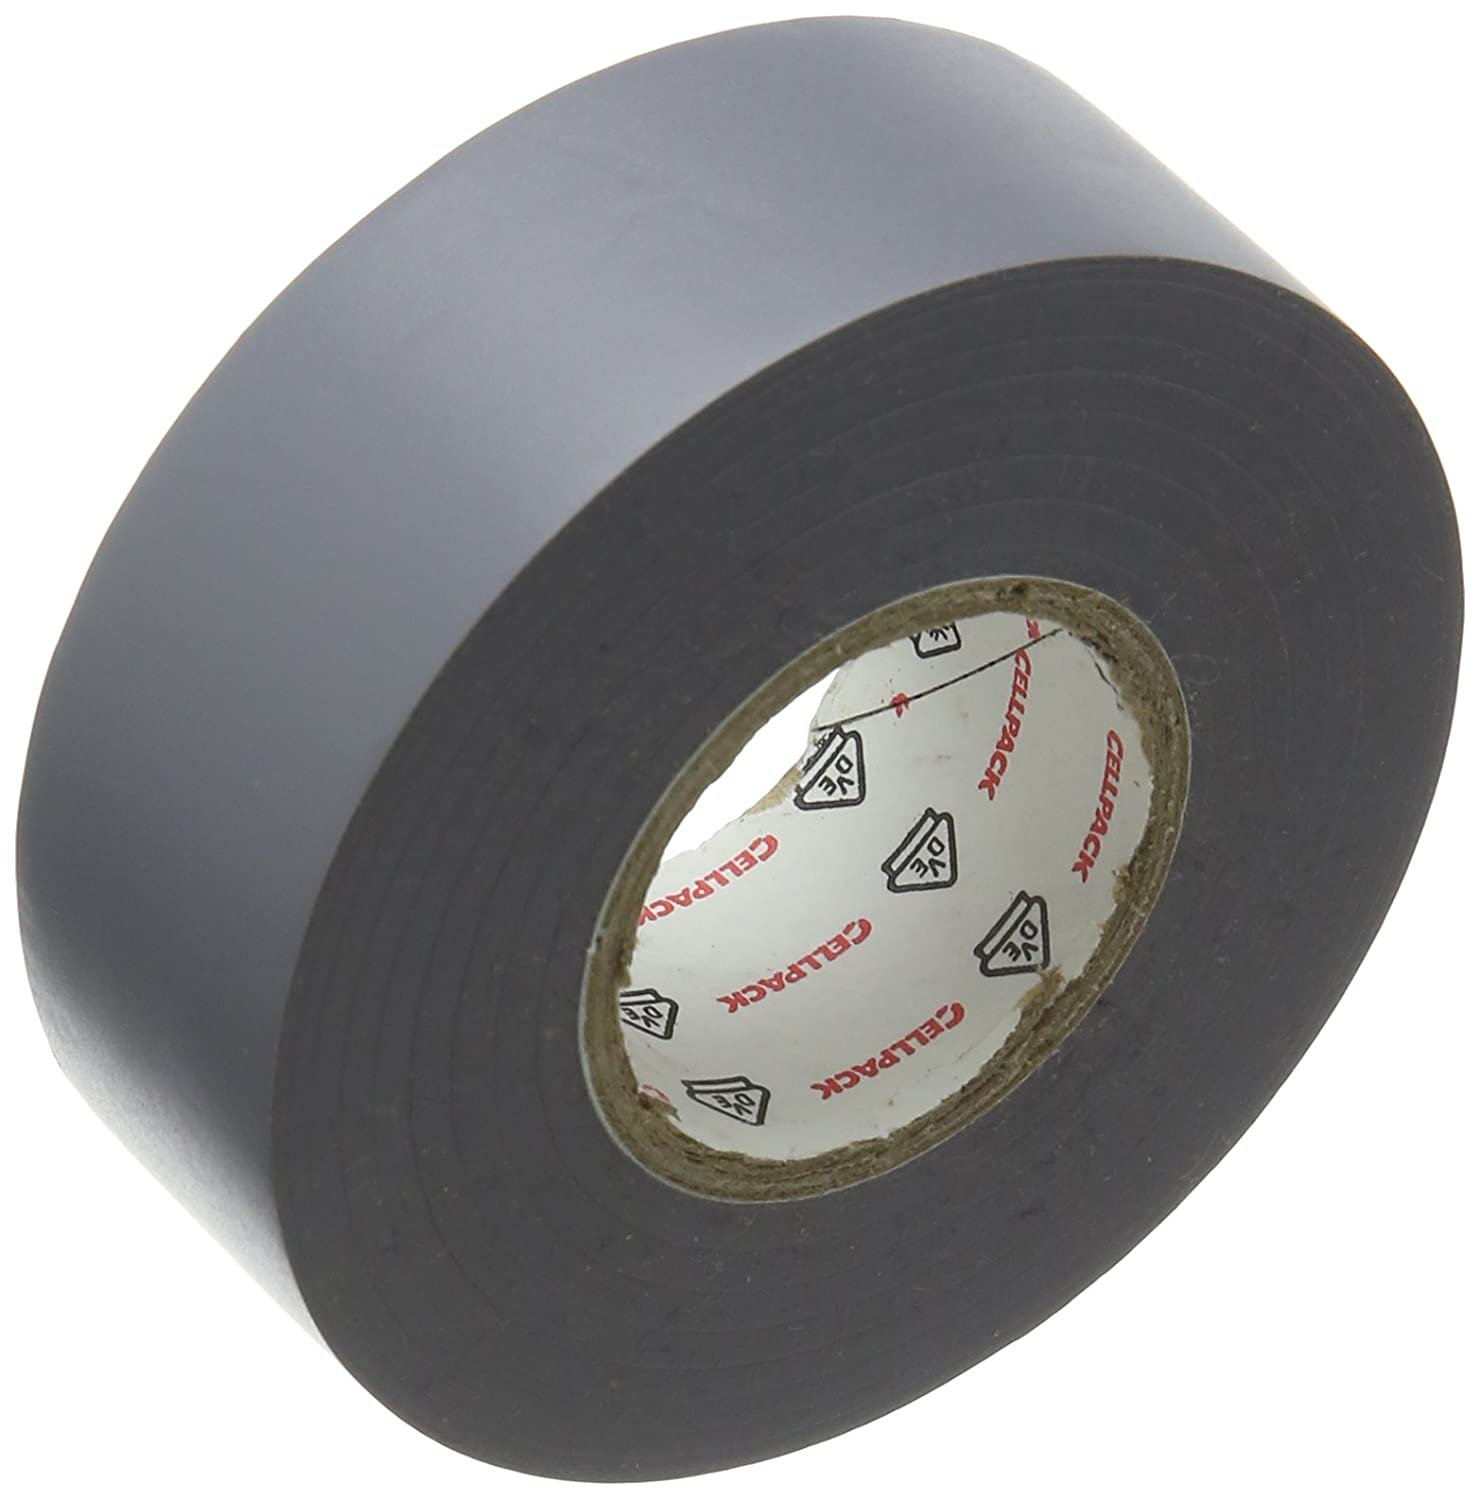 Cellpack 145782 128 0.15-25-25, PVC Electrical Insulation Tape, Grey